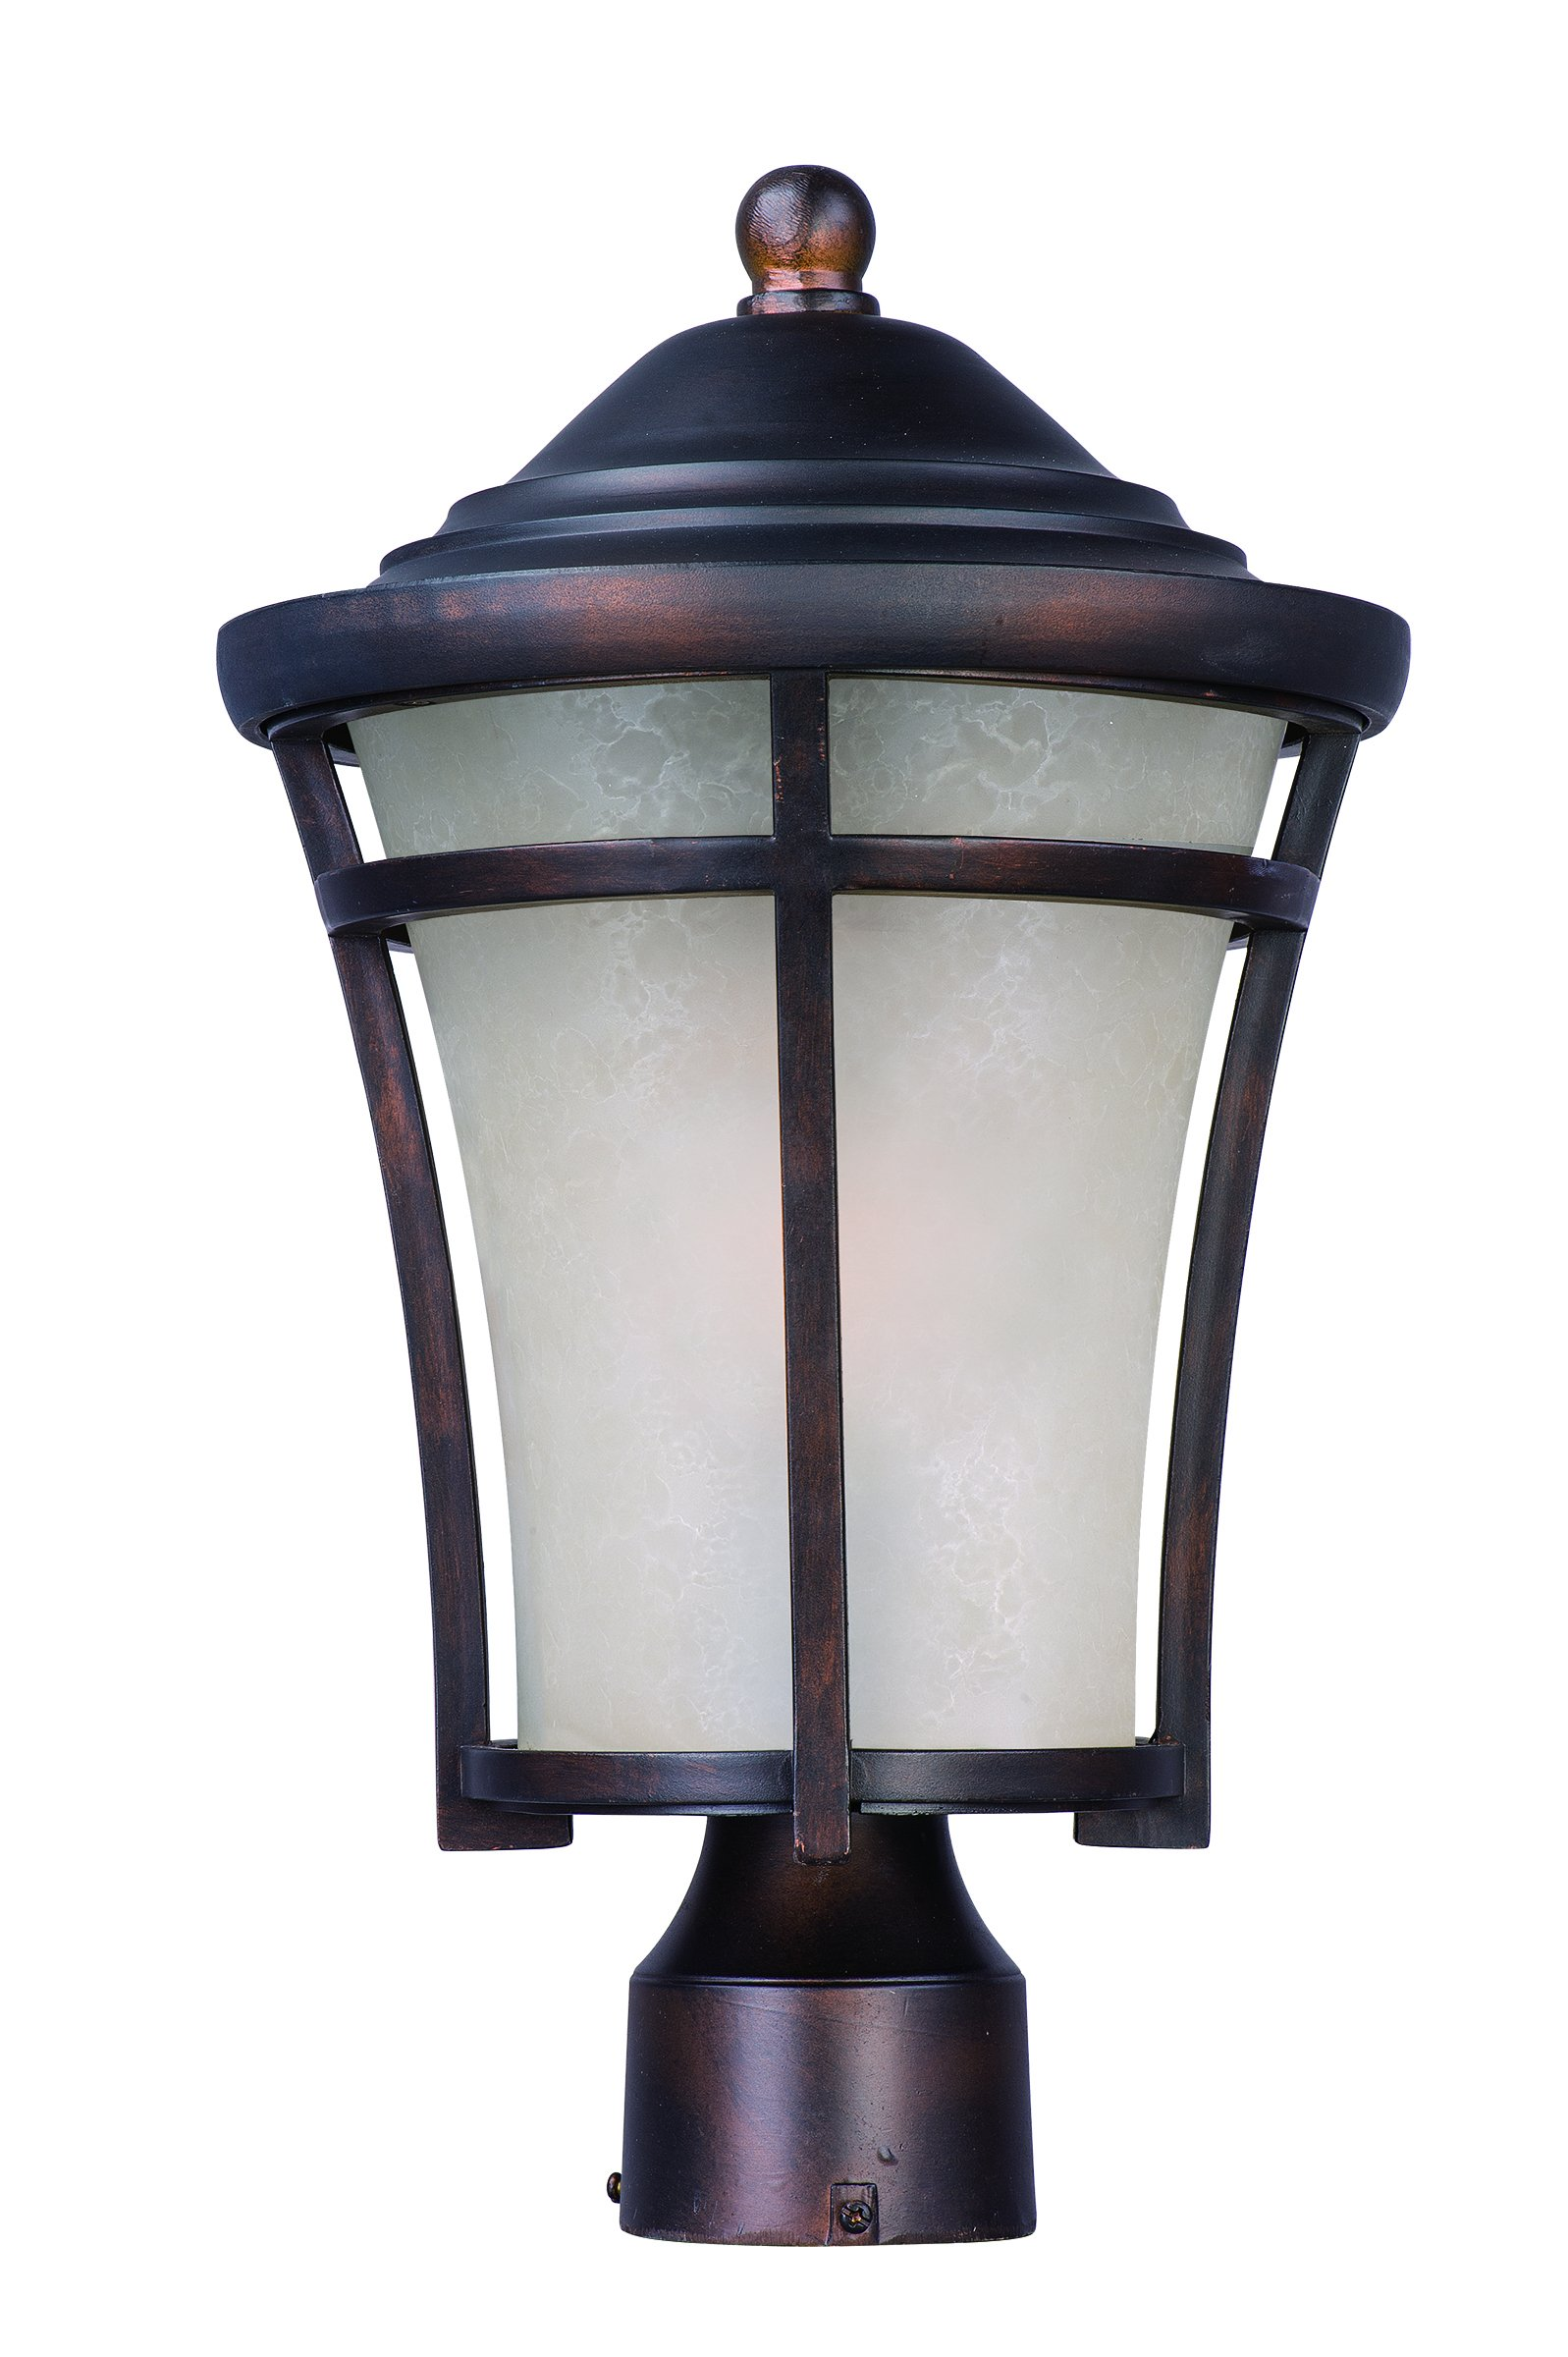 Maxim 85500LACO Balboa DC EE 1-Light Medium Outdoor Post, Copper Oxide Finish, Lace Glass, GU24 Fluorescent Fluorescent Bulb , 13W Max., Wet Safety Rating, 2700K Color Temp, Glass Shade Material, 1800 Rated Lumens